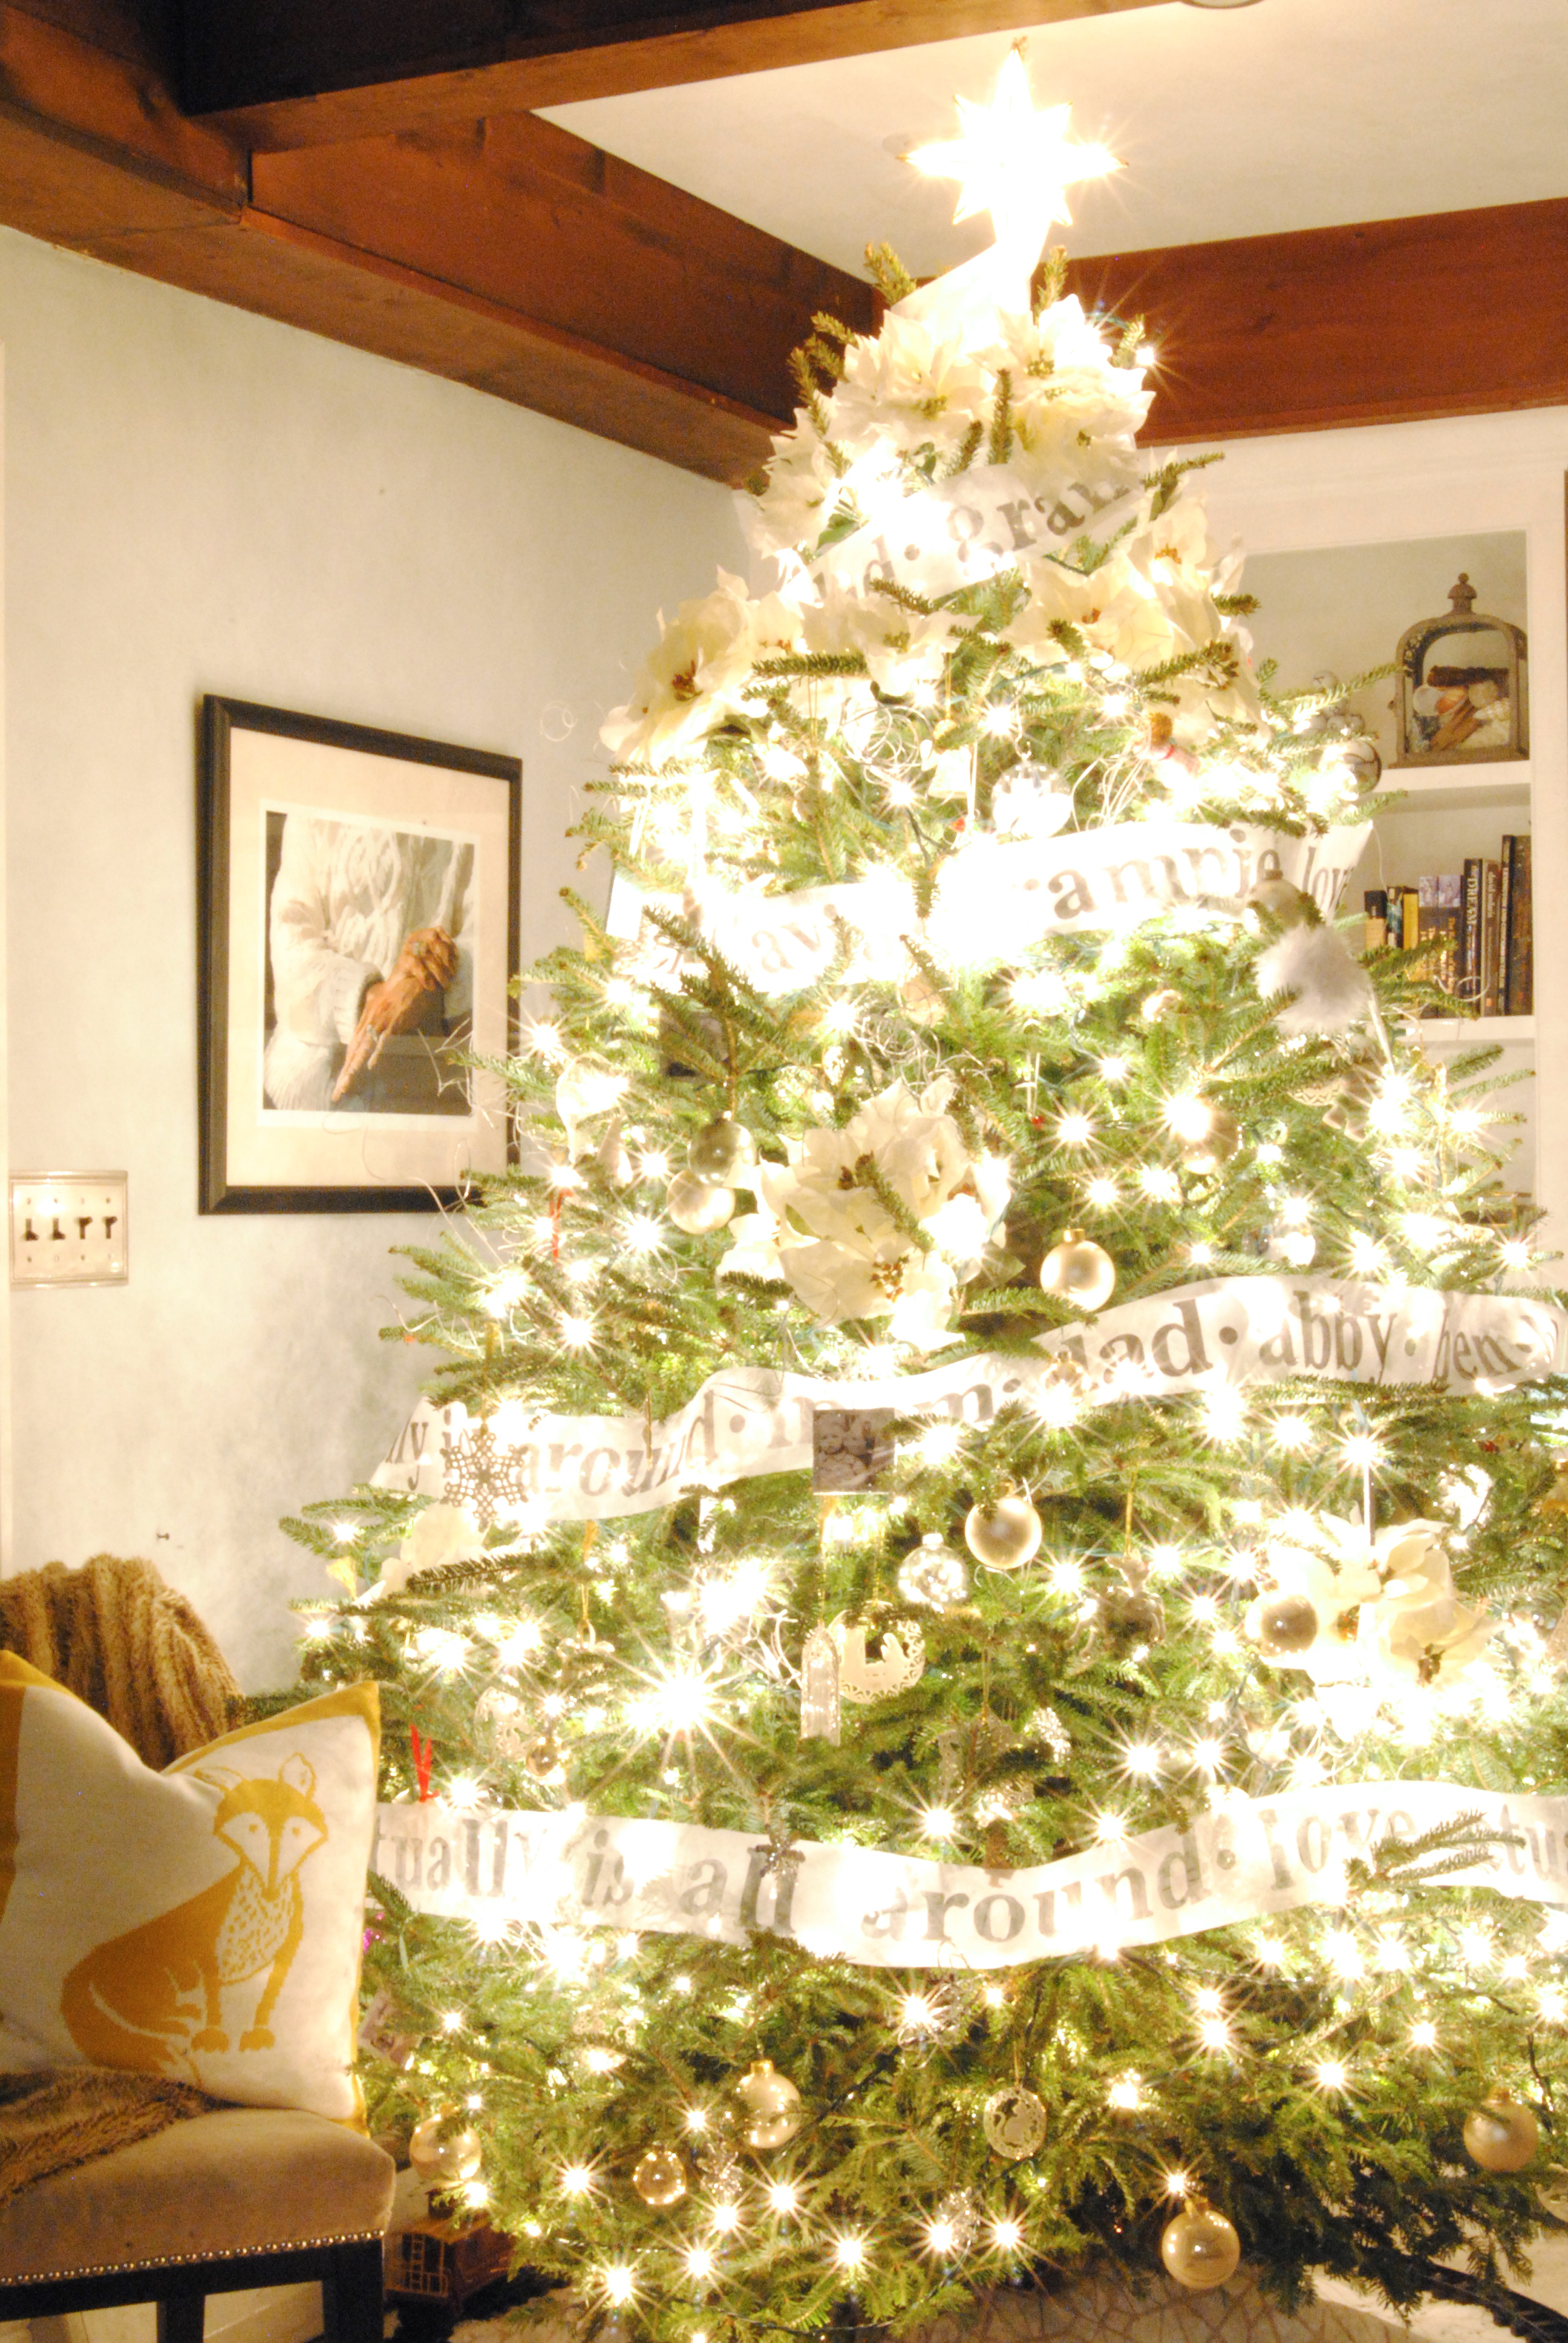 christmas decorating holiday decorations tour which tree simple pillow quite fox because